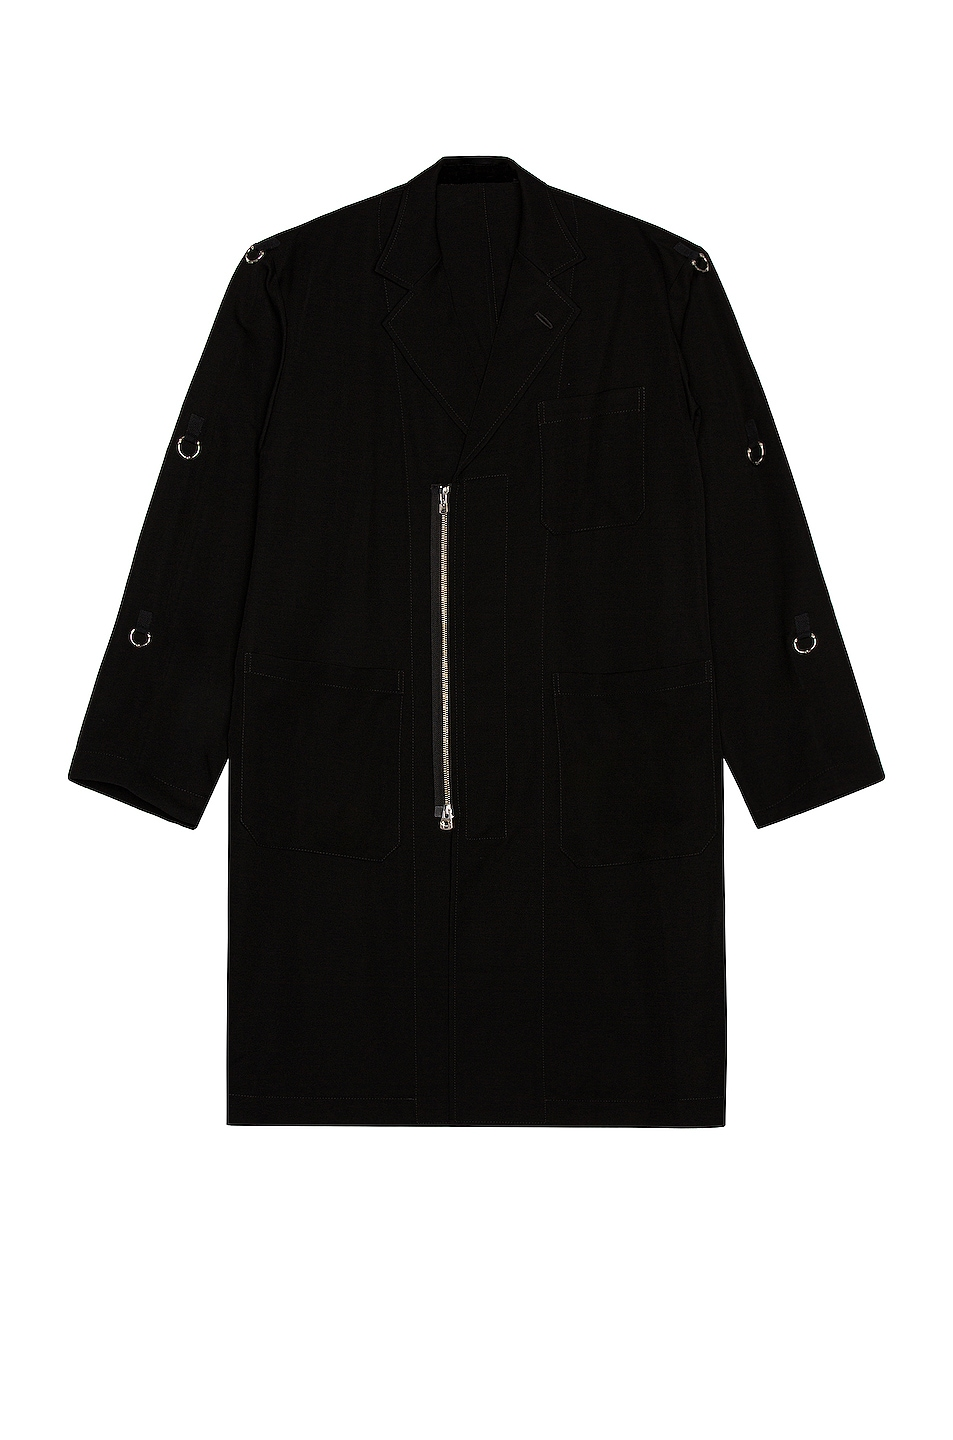 Image 1 of TAKAHIROMIYASHITA The Soloist Doctor Jacket in Black